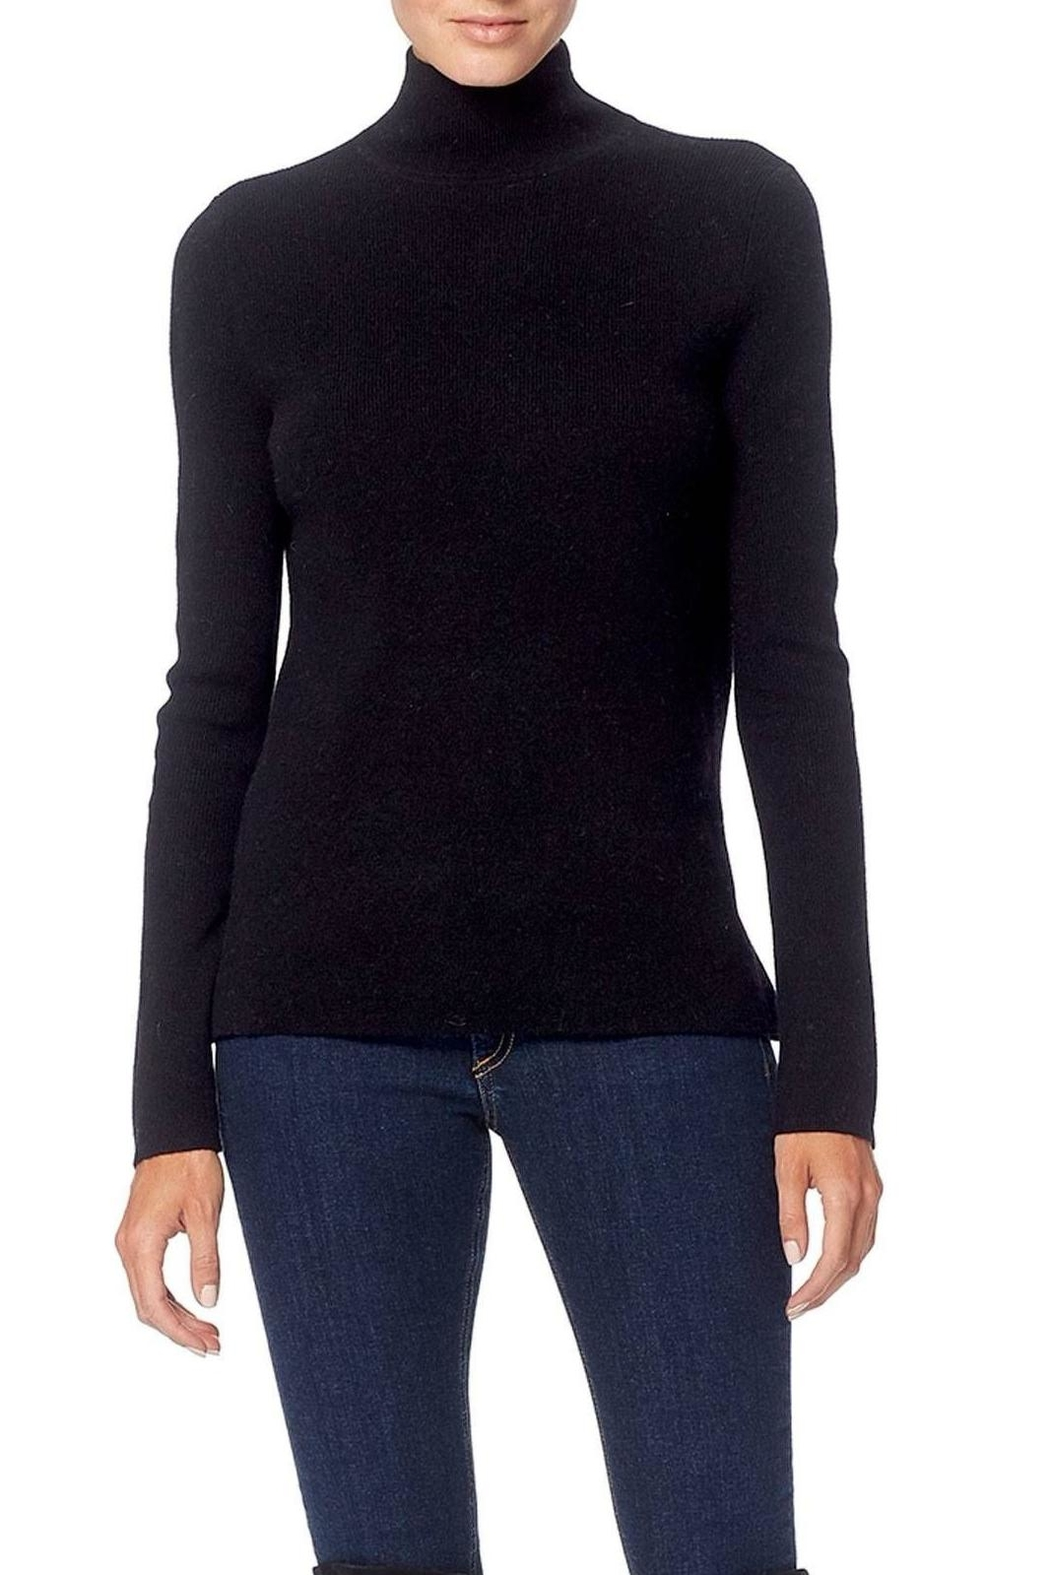 360 Cashmere Open-Back Turtleneck Sweater - Main Image